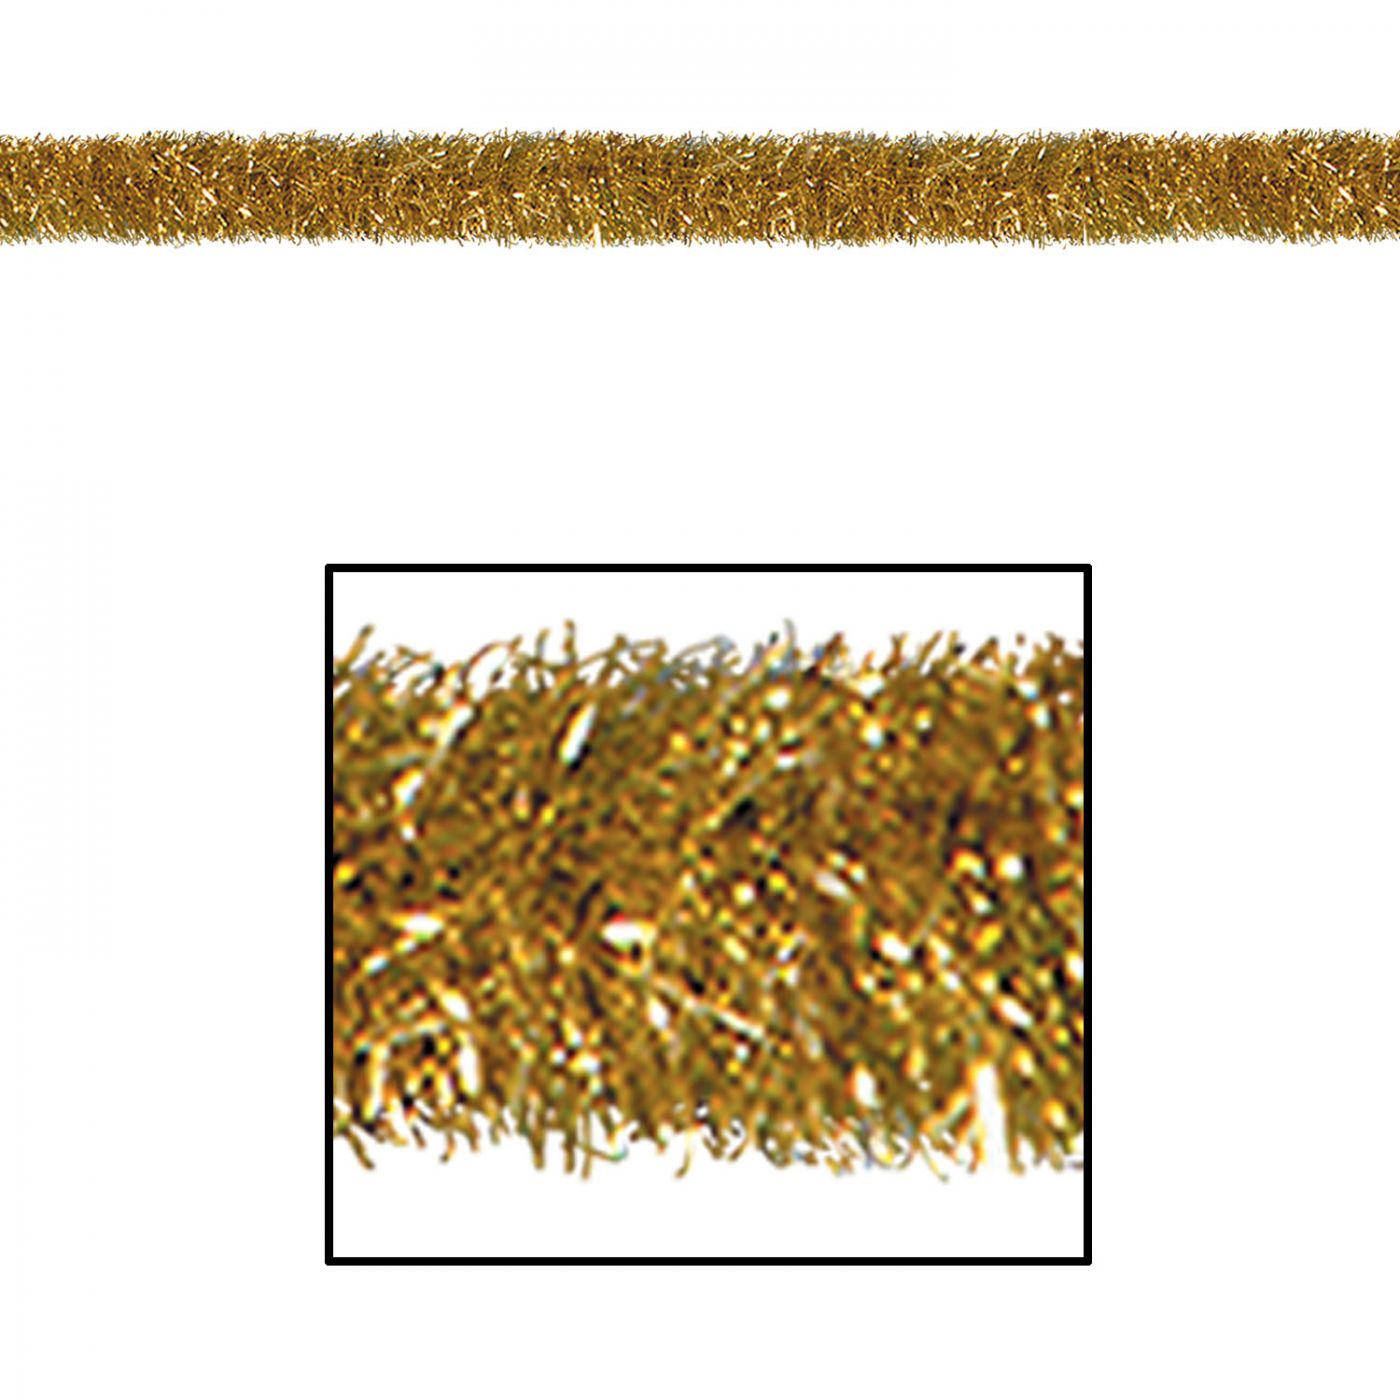 FR Gleam 'N Tinsel Garland (1) image